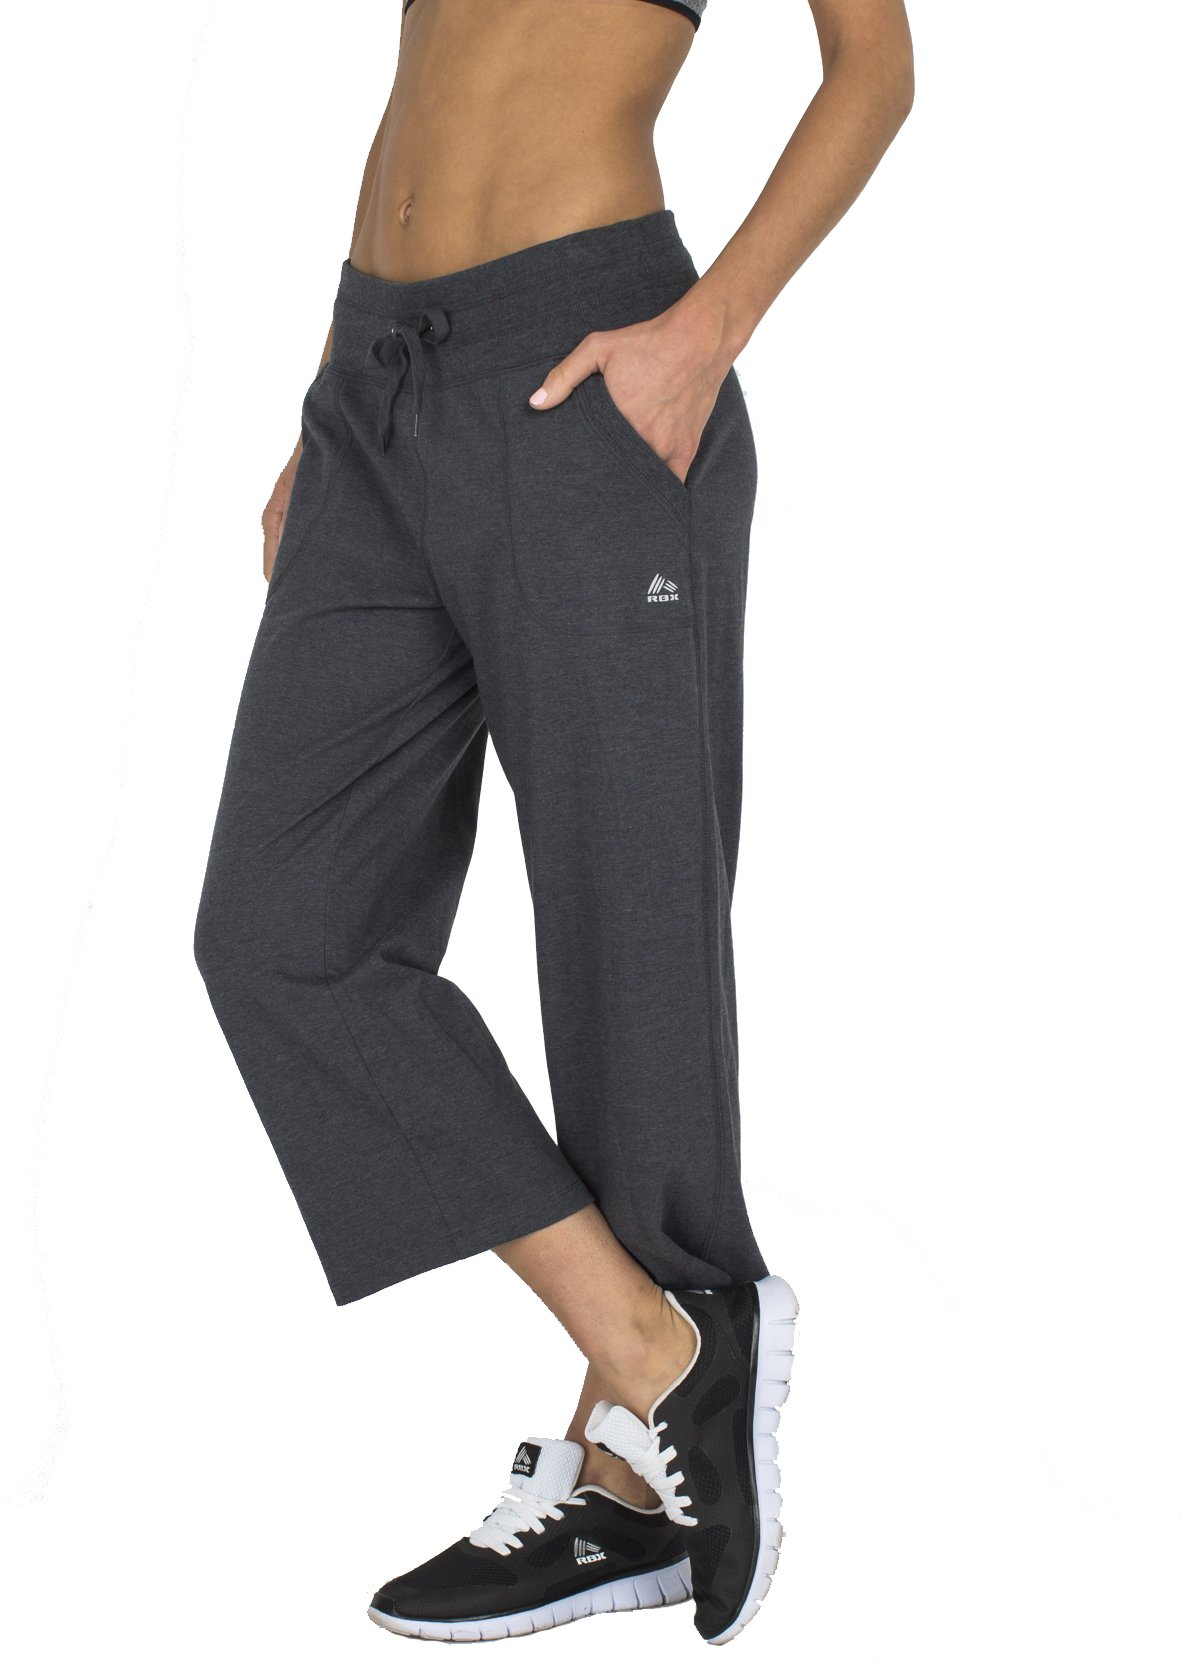 RBX Active Women's Relaxed Fit Cotton Capri Pant w/ Dual Pockets, Medium, Charcoal